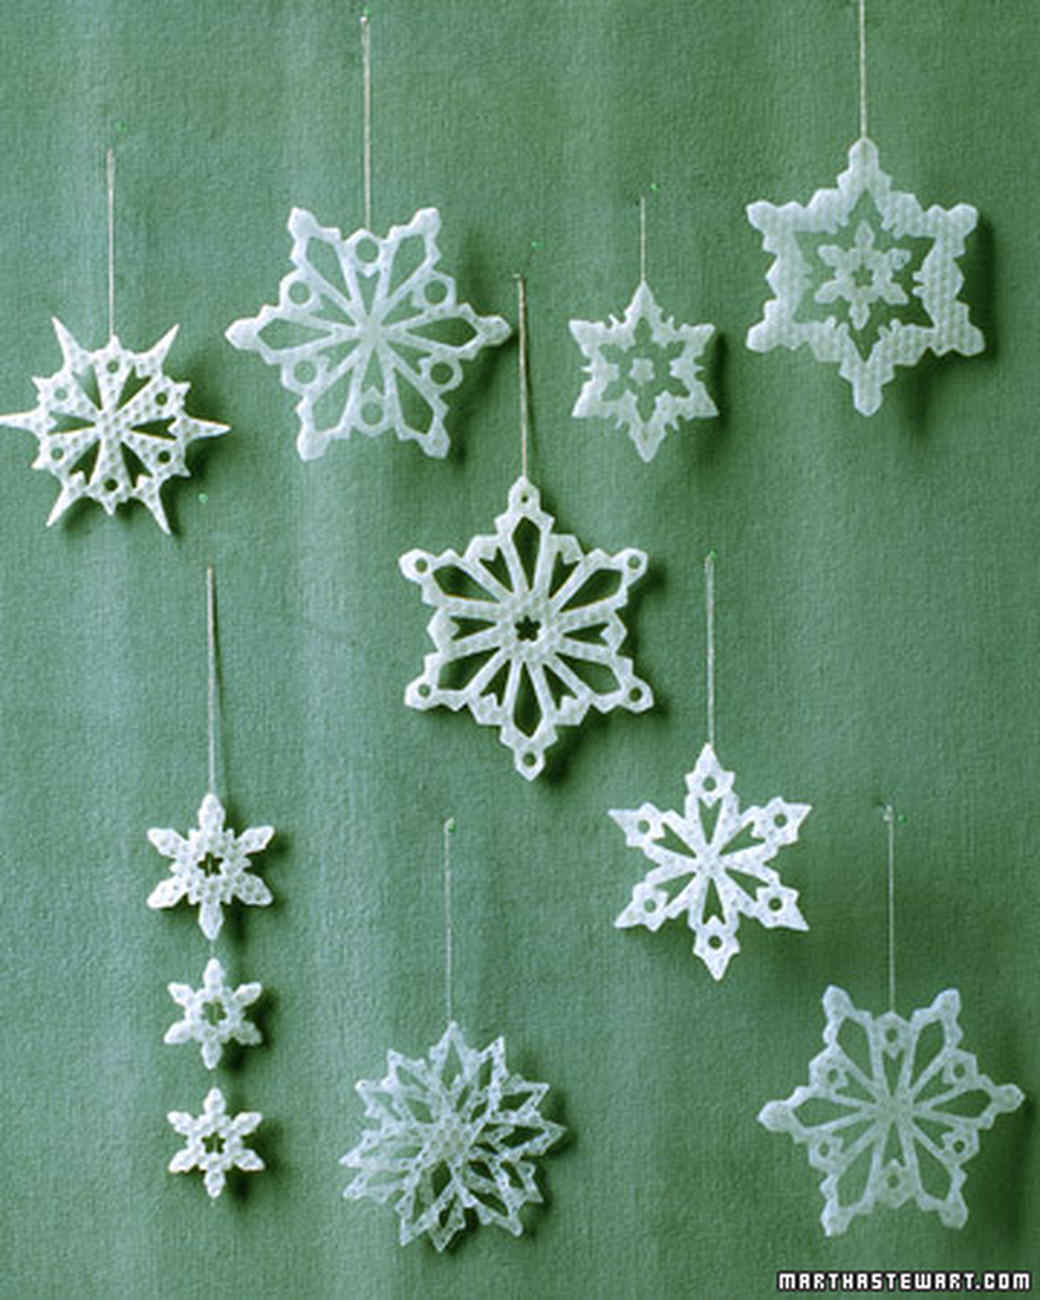 17 Snowflake Ornaments That'll Guarantee a White Christmas | Martha ...